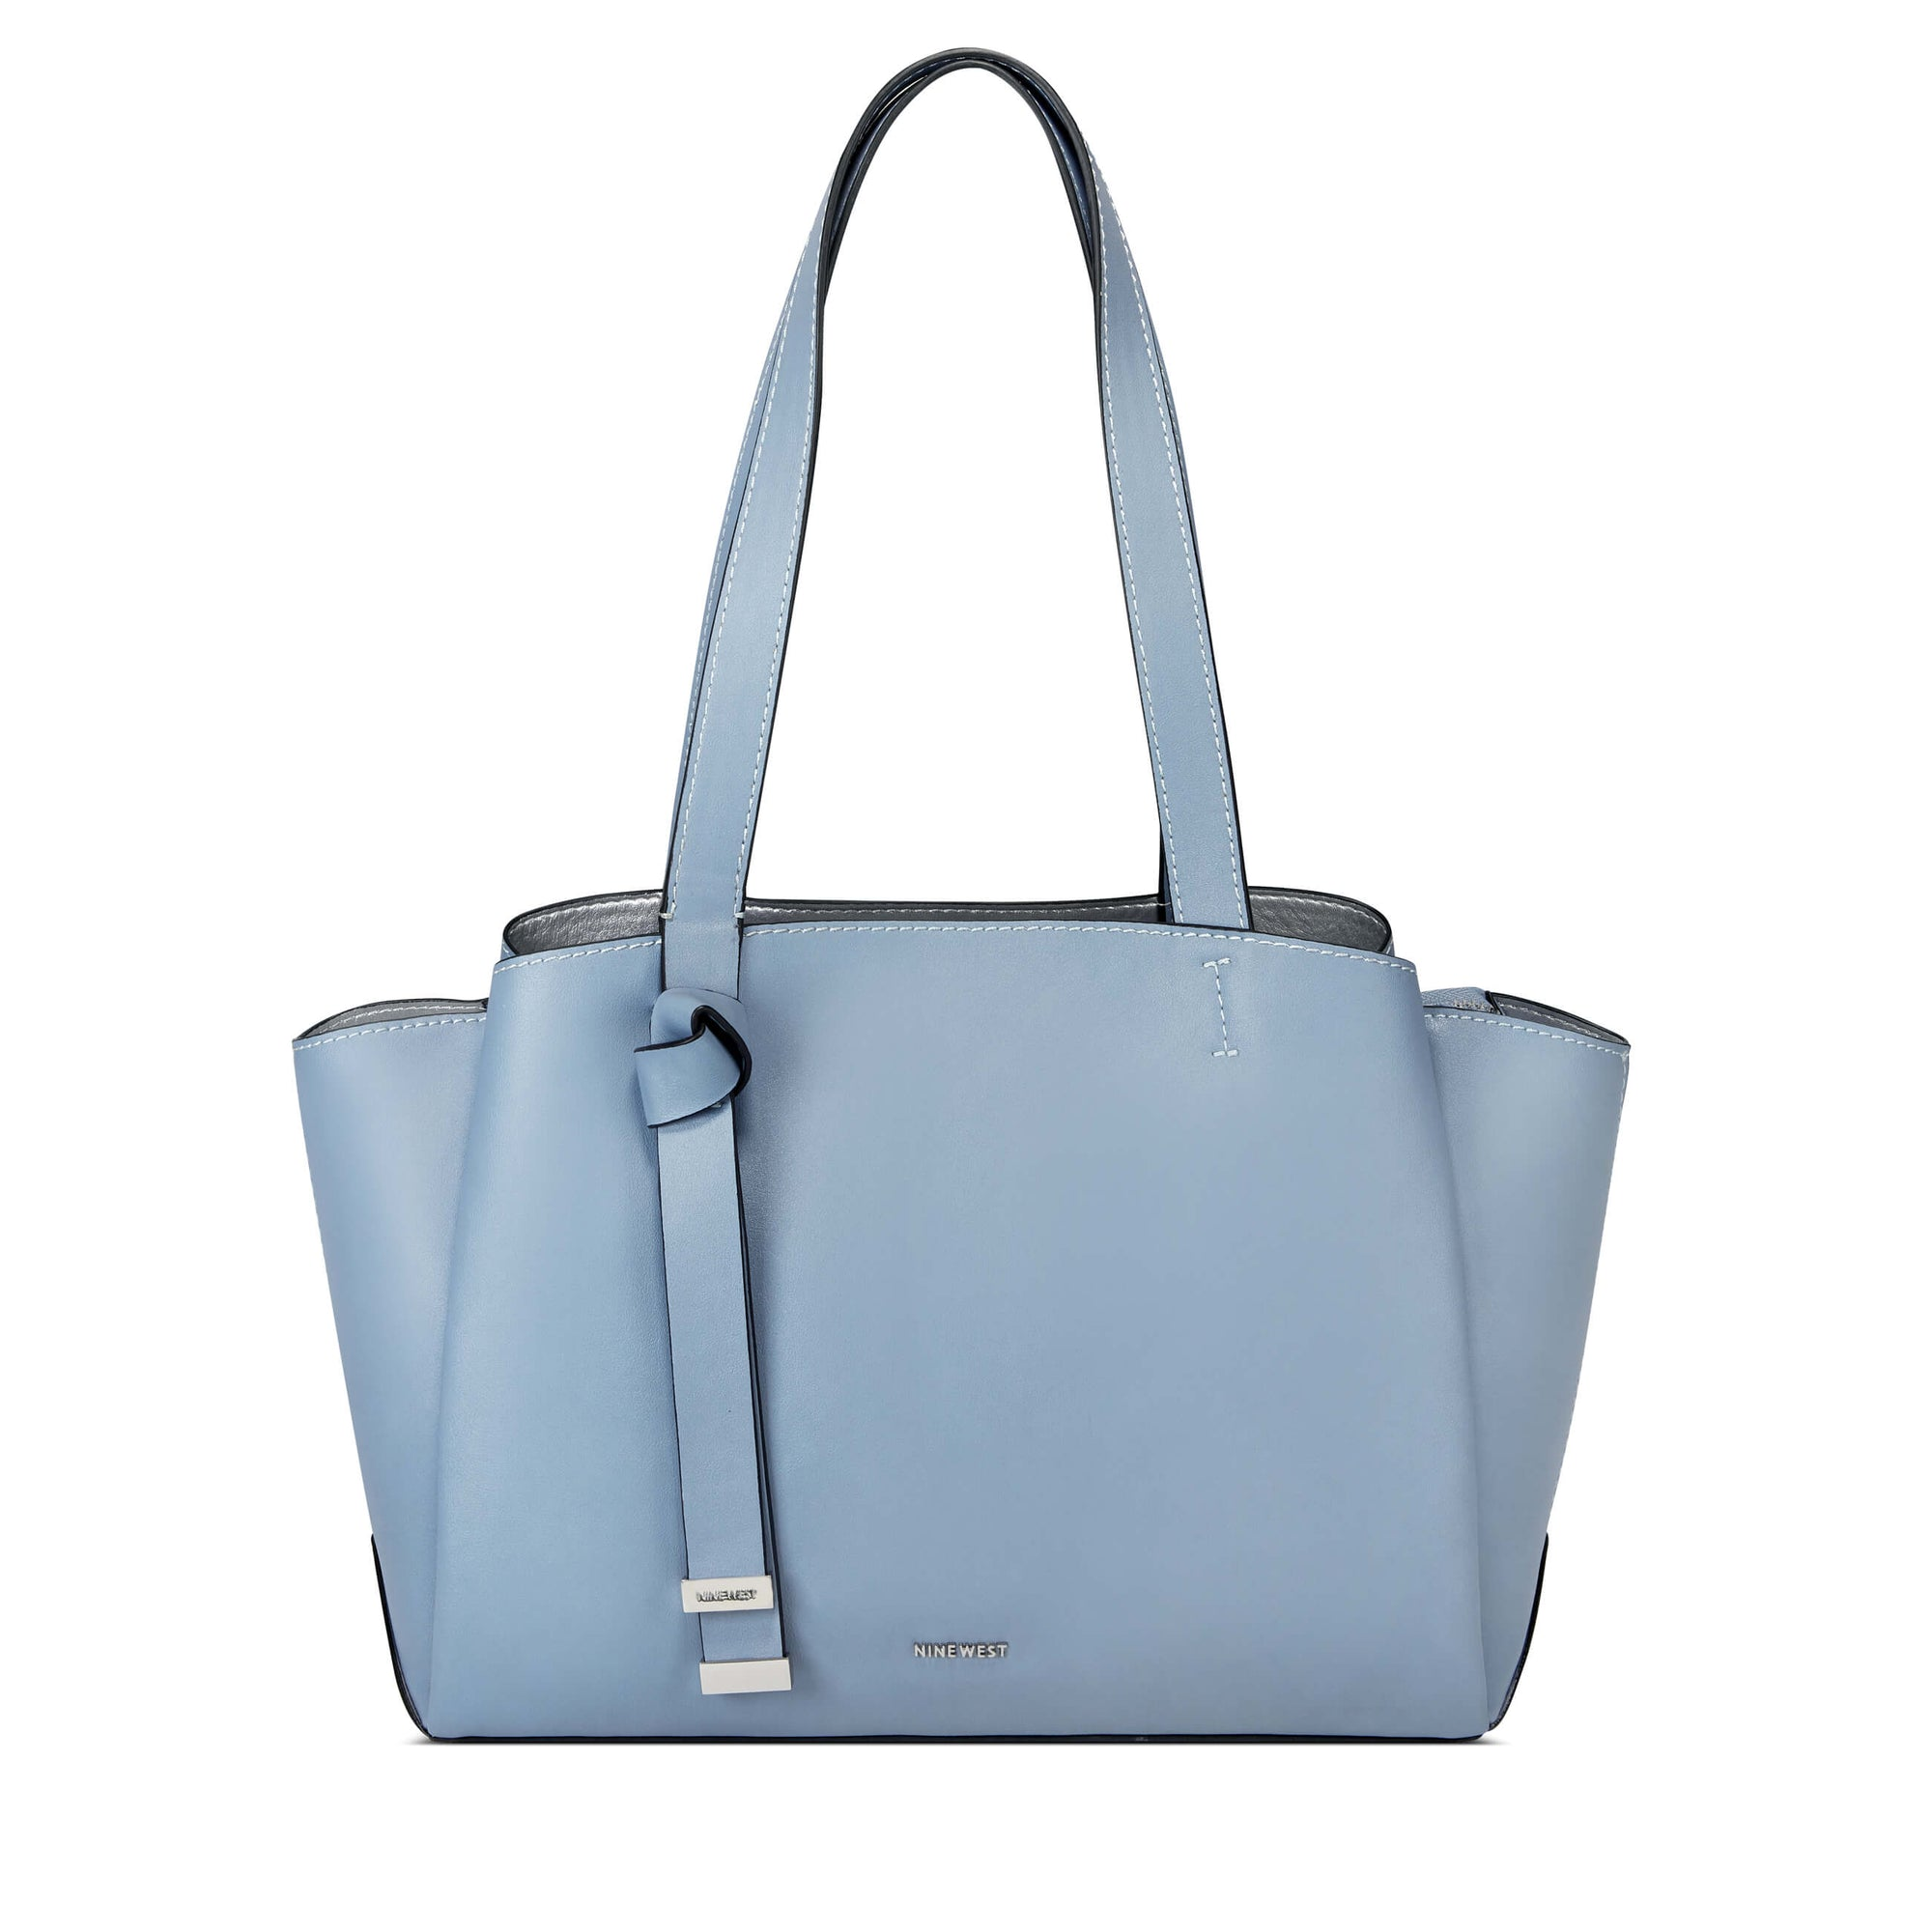 mariele-jet-set-satchel-in-chambray